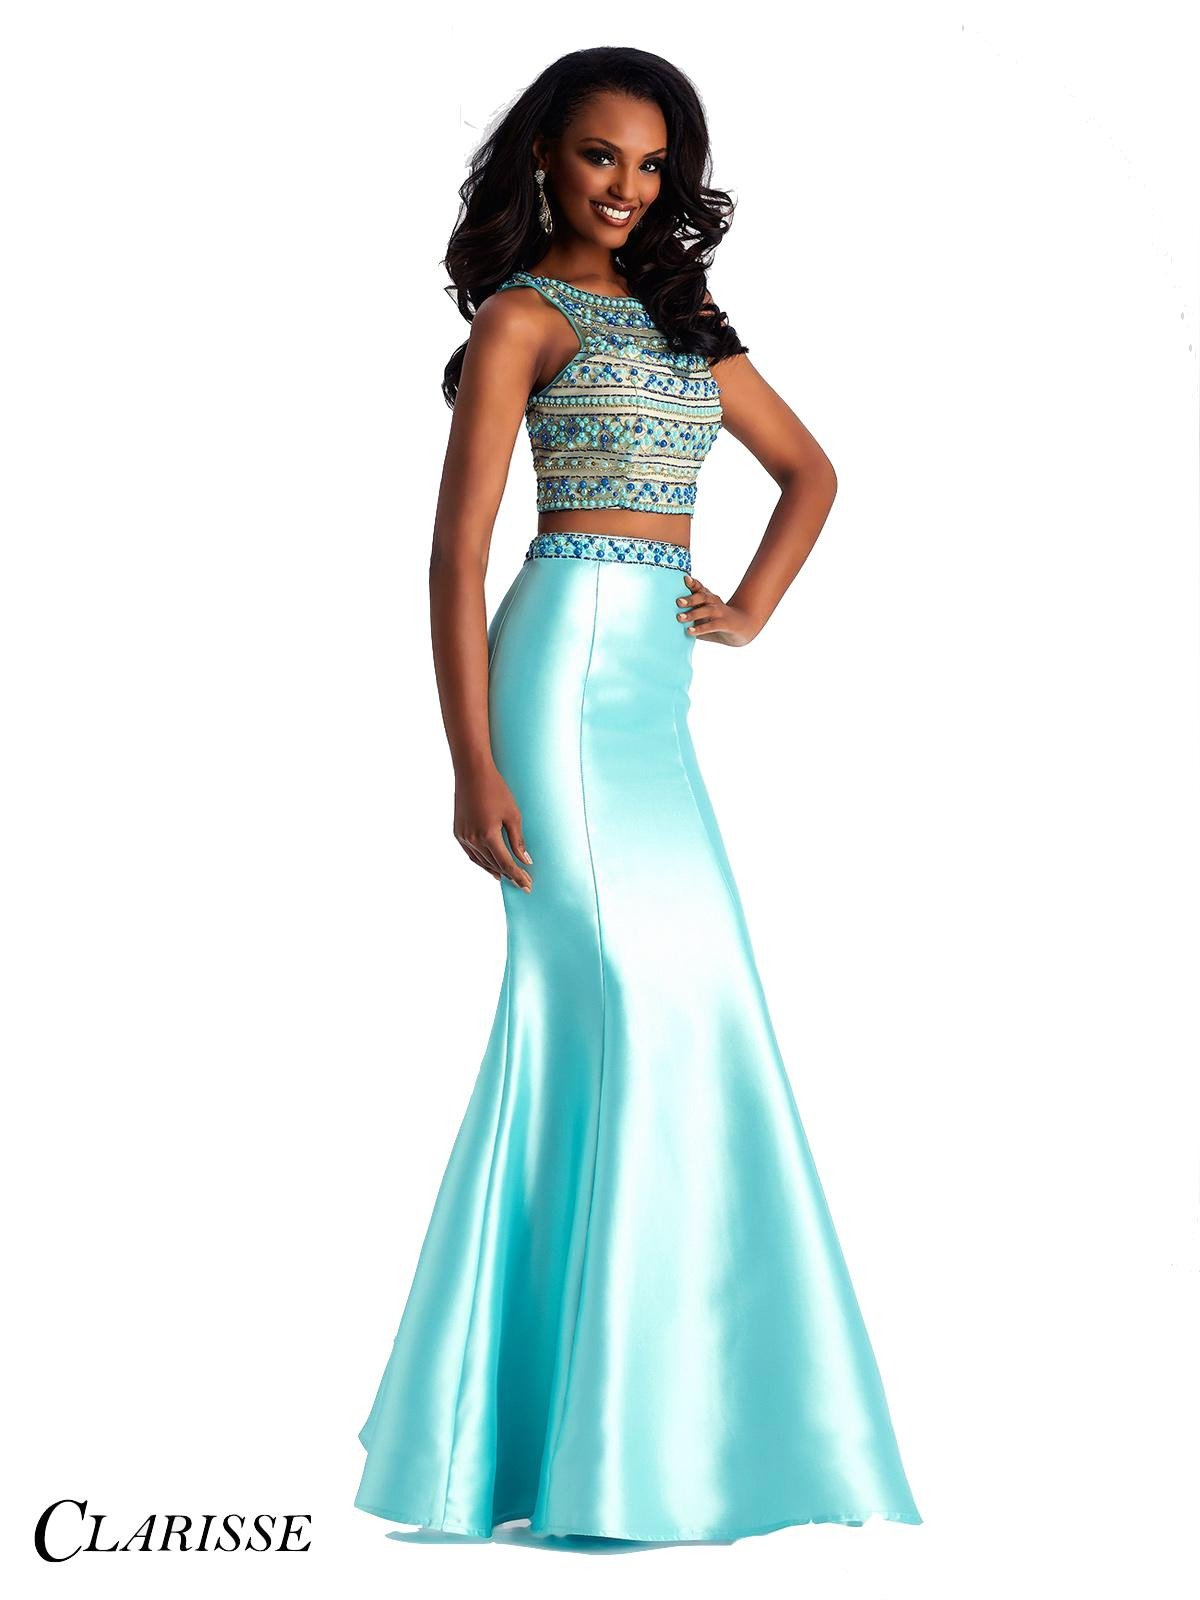 Clarisse style # 3071 two piece dress